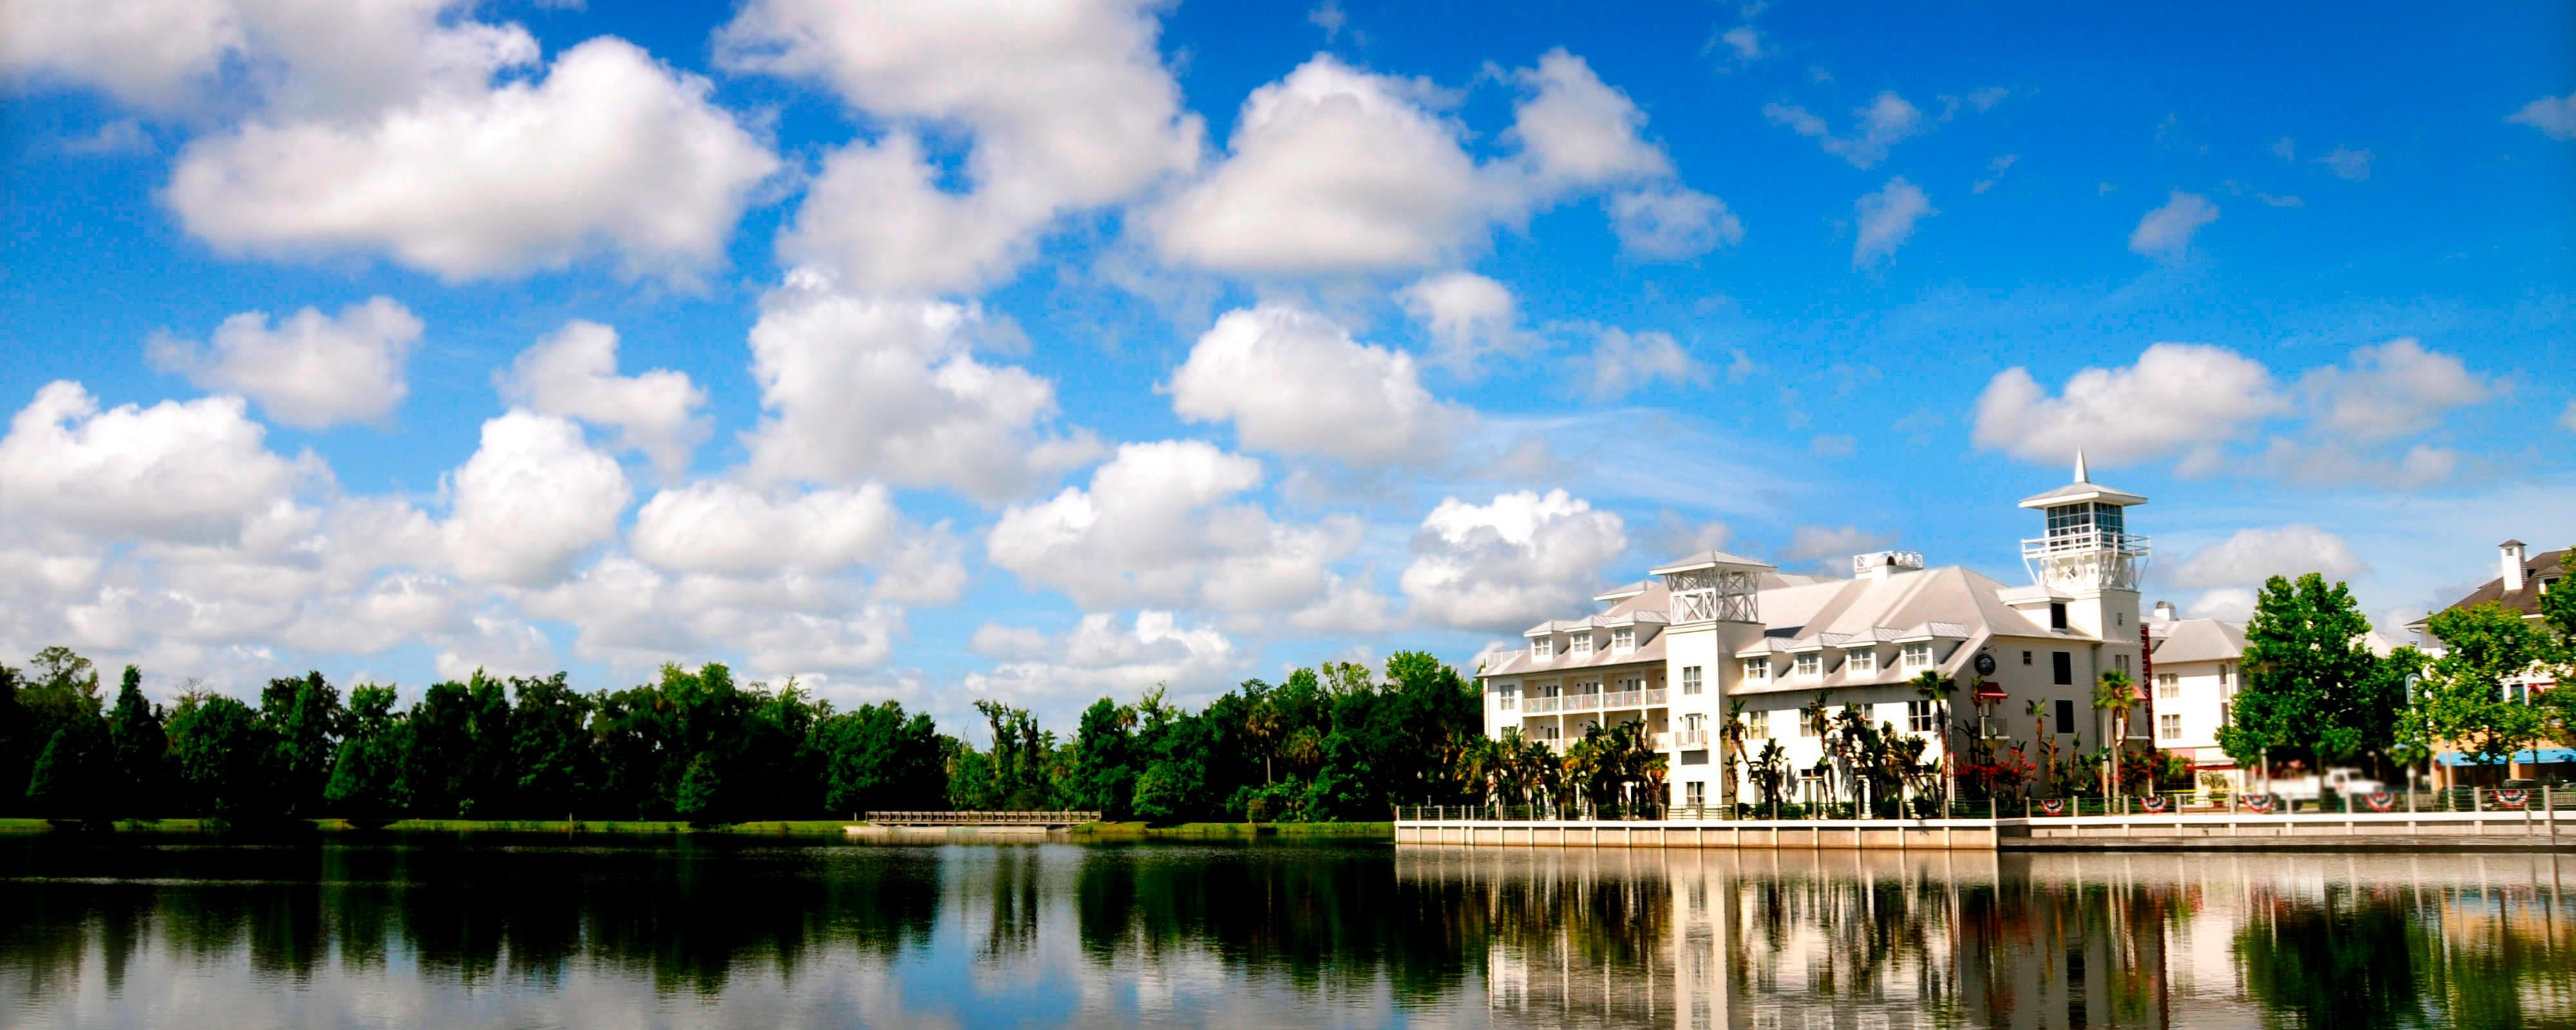 hotels in celebration Florida